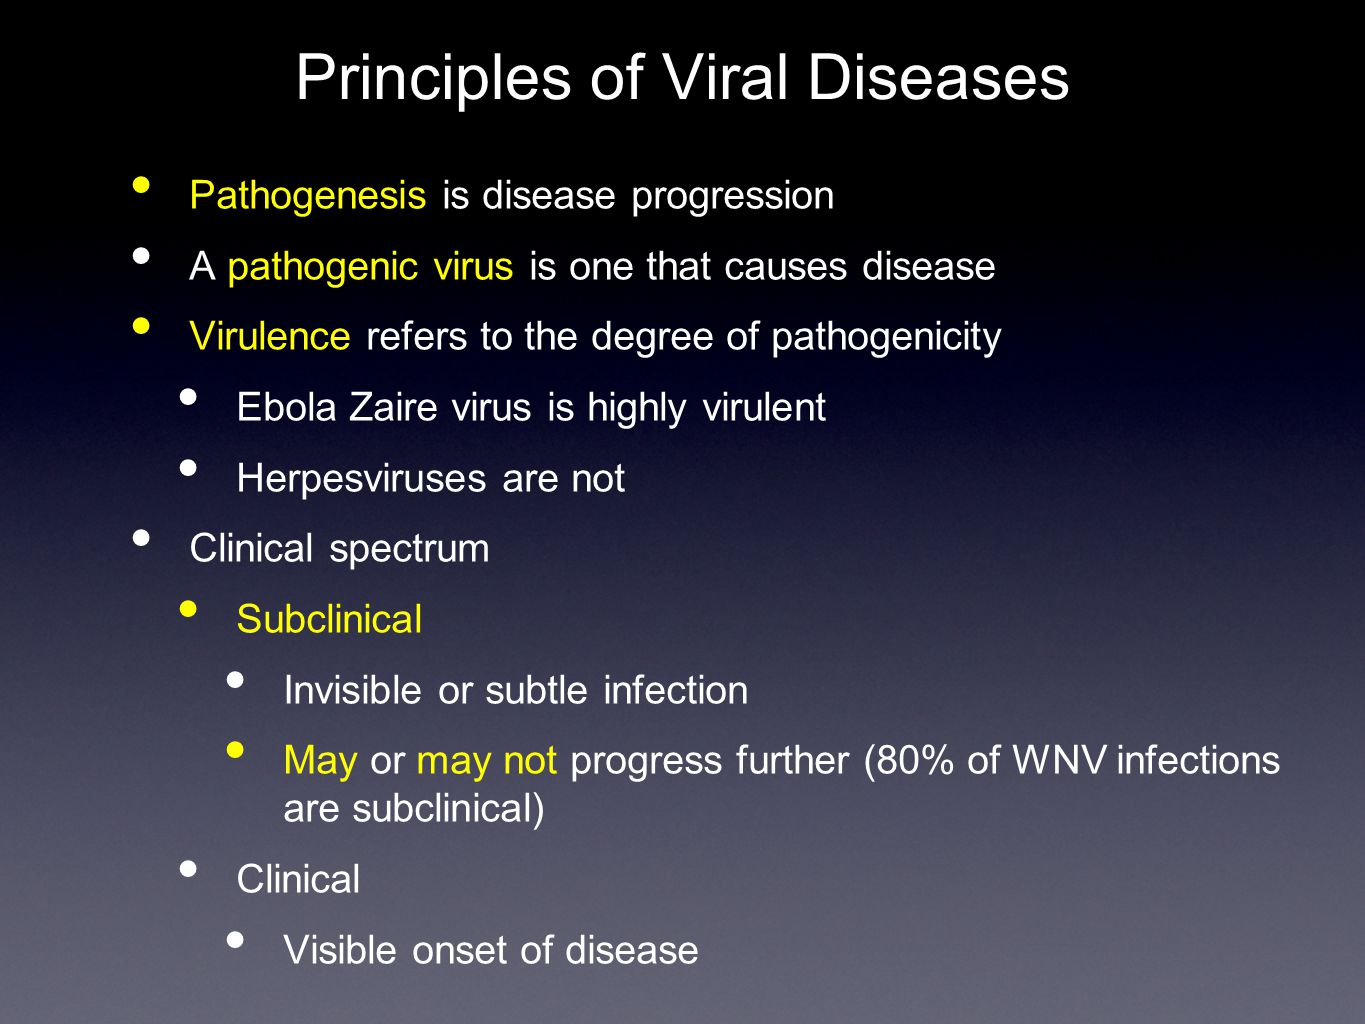 Pathogenesis of Viral Diseases Steps of pathogenesis Entry and primary replication (acute infection) Portals of entry where first localized infections occur Varies with virus Viral spread and cell tropism Sites distant from entry where virus can replicate Viremia - the spread of virus through the blood Nervous system spread - rabies, herpesviruses Infections are usually organ or tissue specific Usually controlled by viral proteins that mediate attachment to cells Viruses encode proteins, including enzymes, that seize control of susceptible cells Cellular transcription factors often dictate susceptibility Measles - a respiratory disease